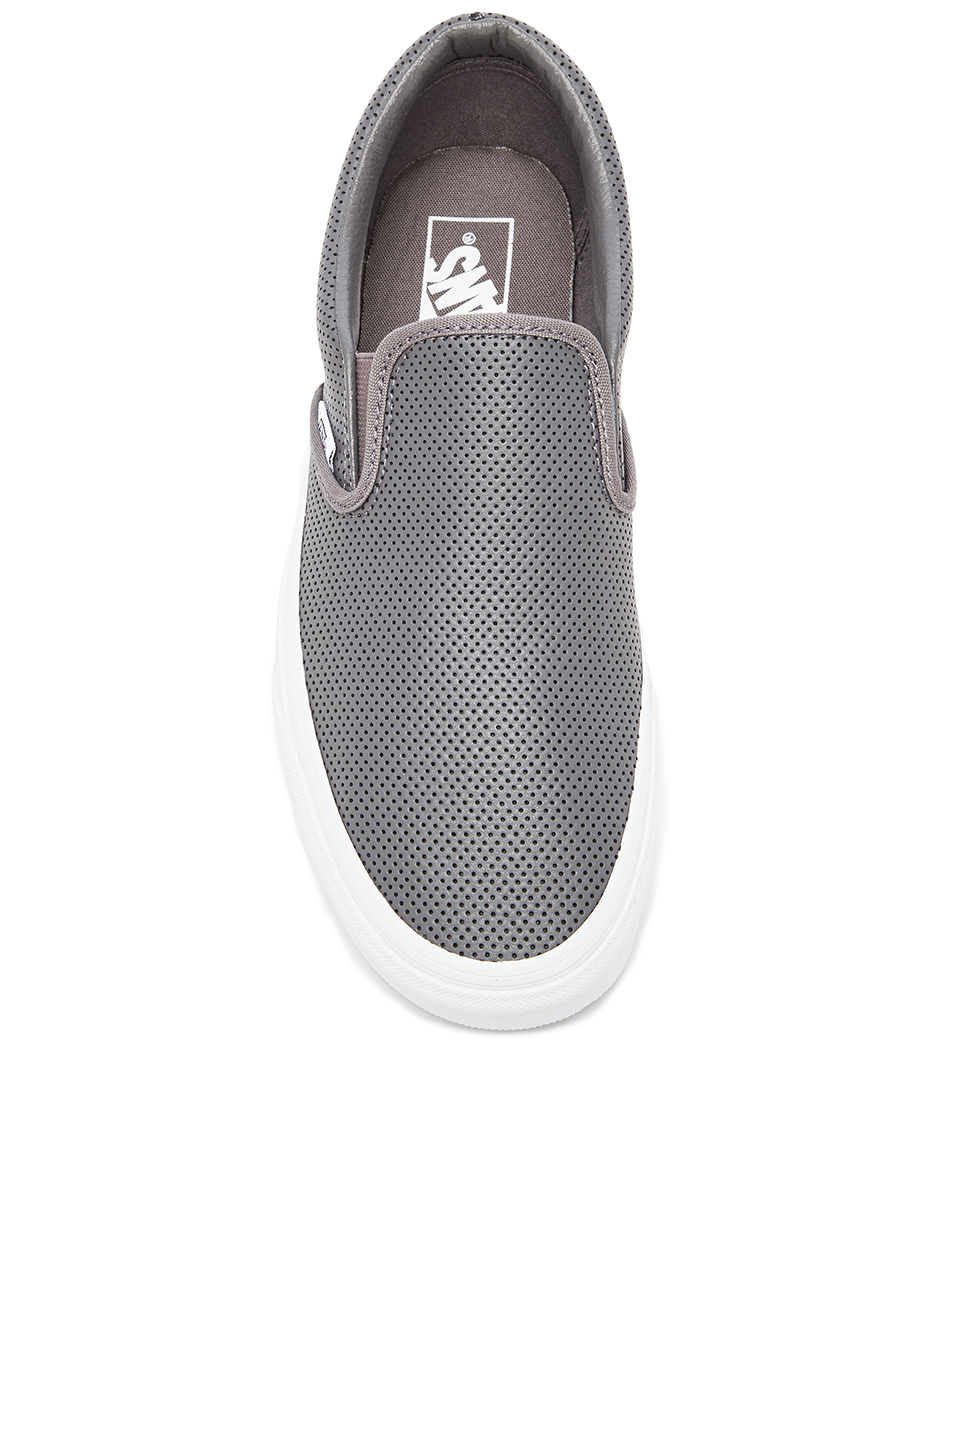 vans perforated leather slip on grey